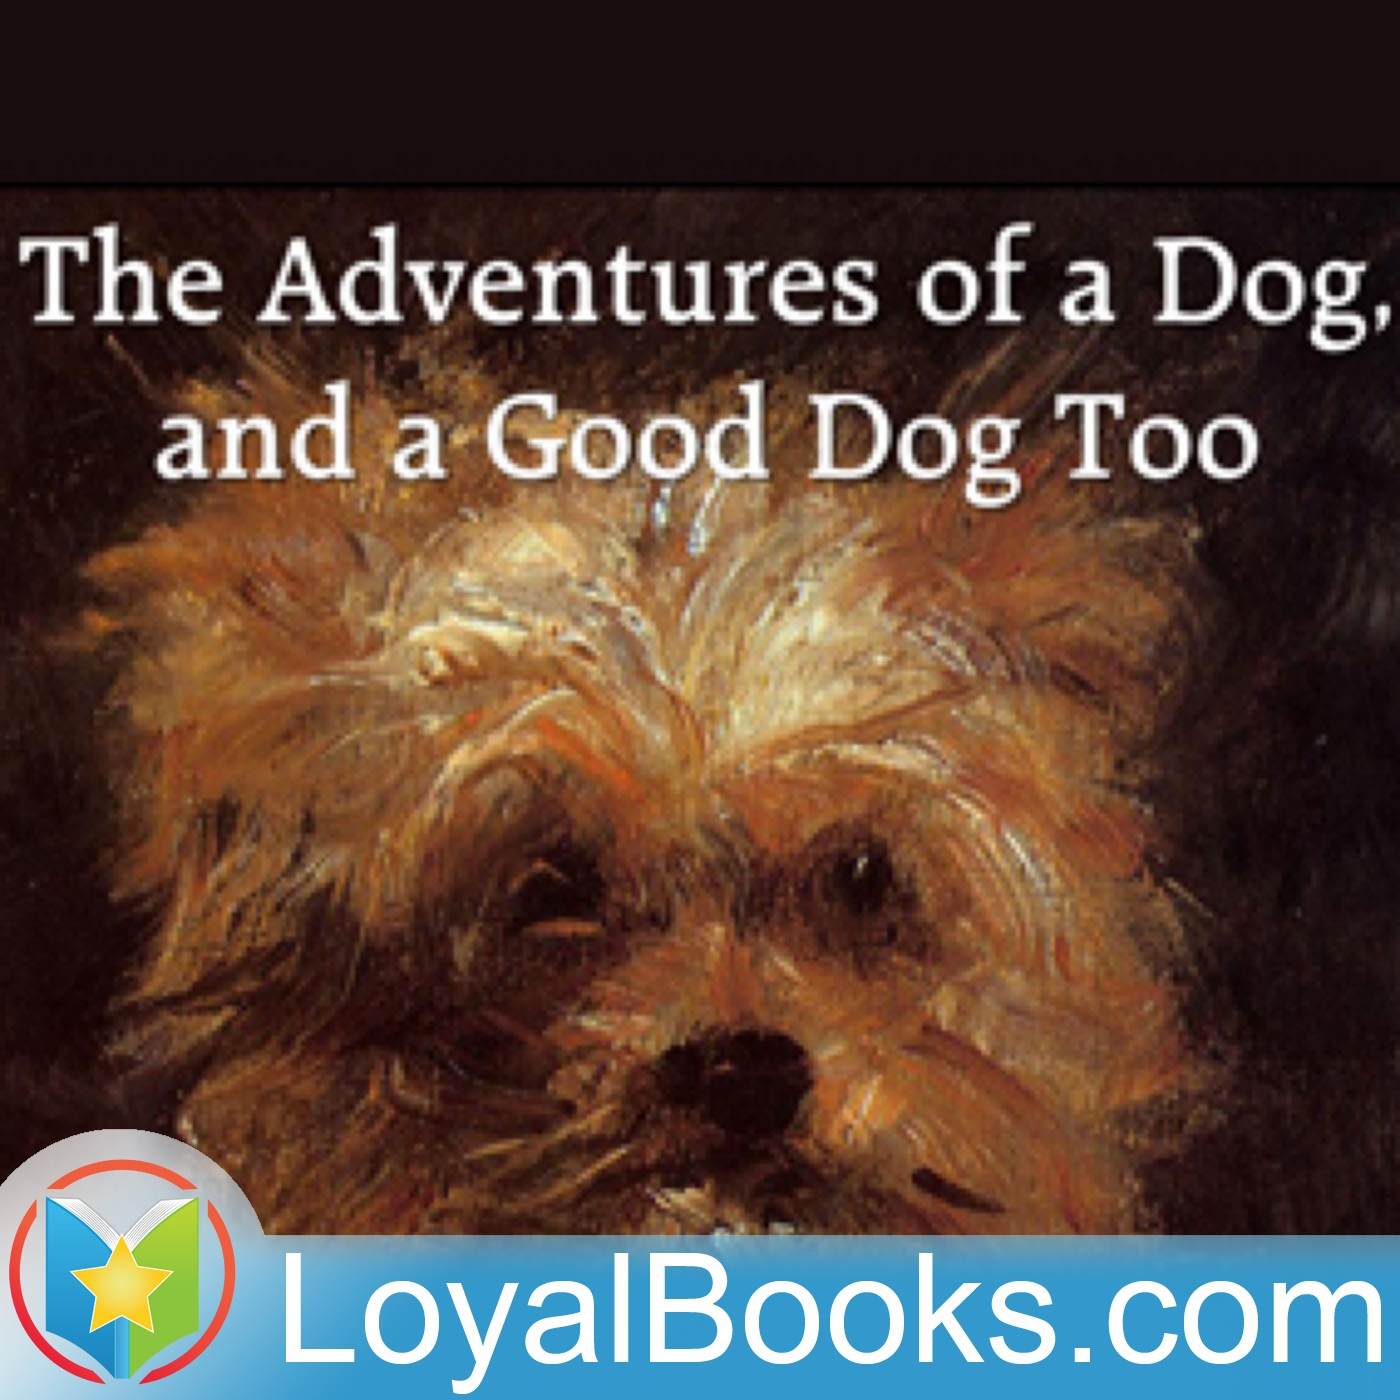 <![CDATA[The Adventures of a Dog, and a Good Dog Too by Alfred Elwes]]>